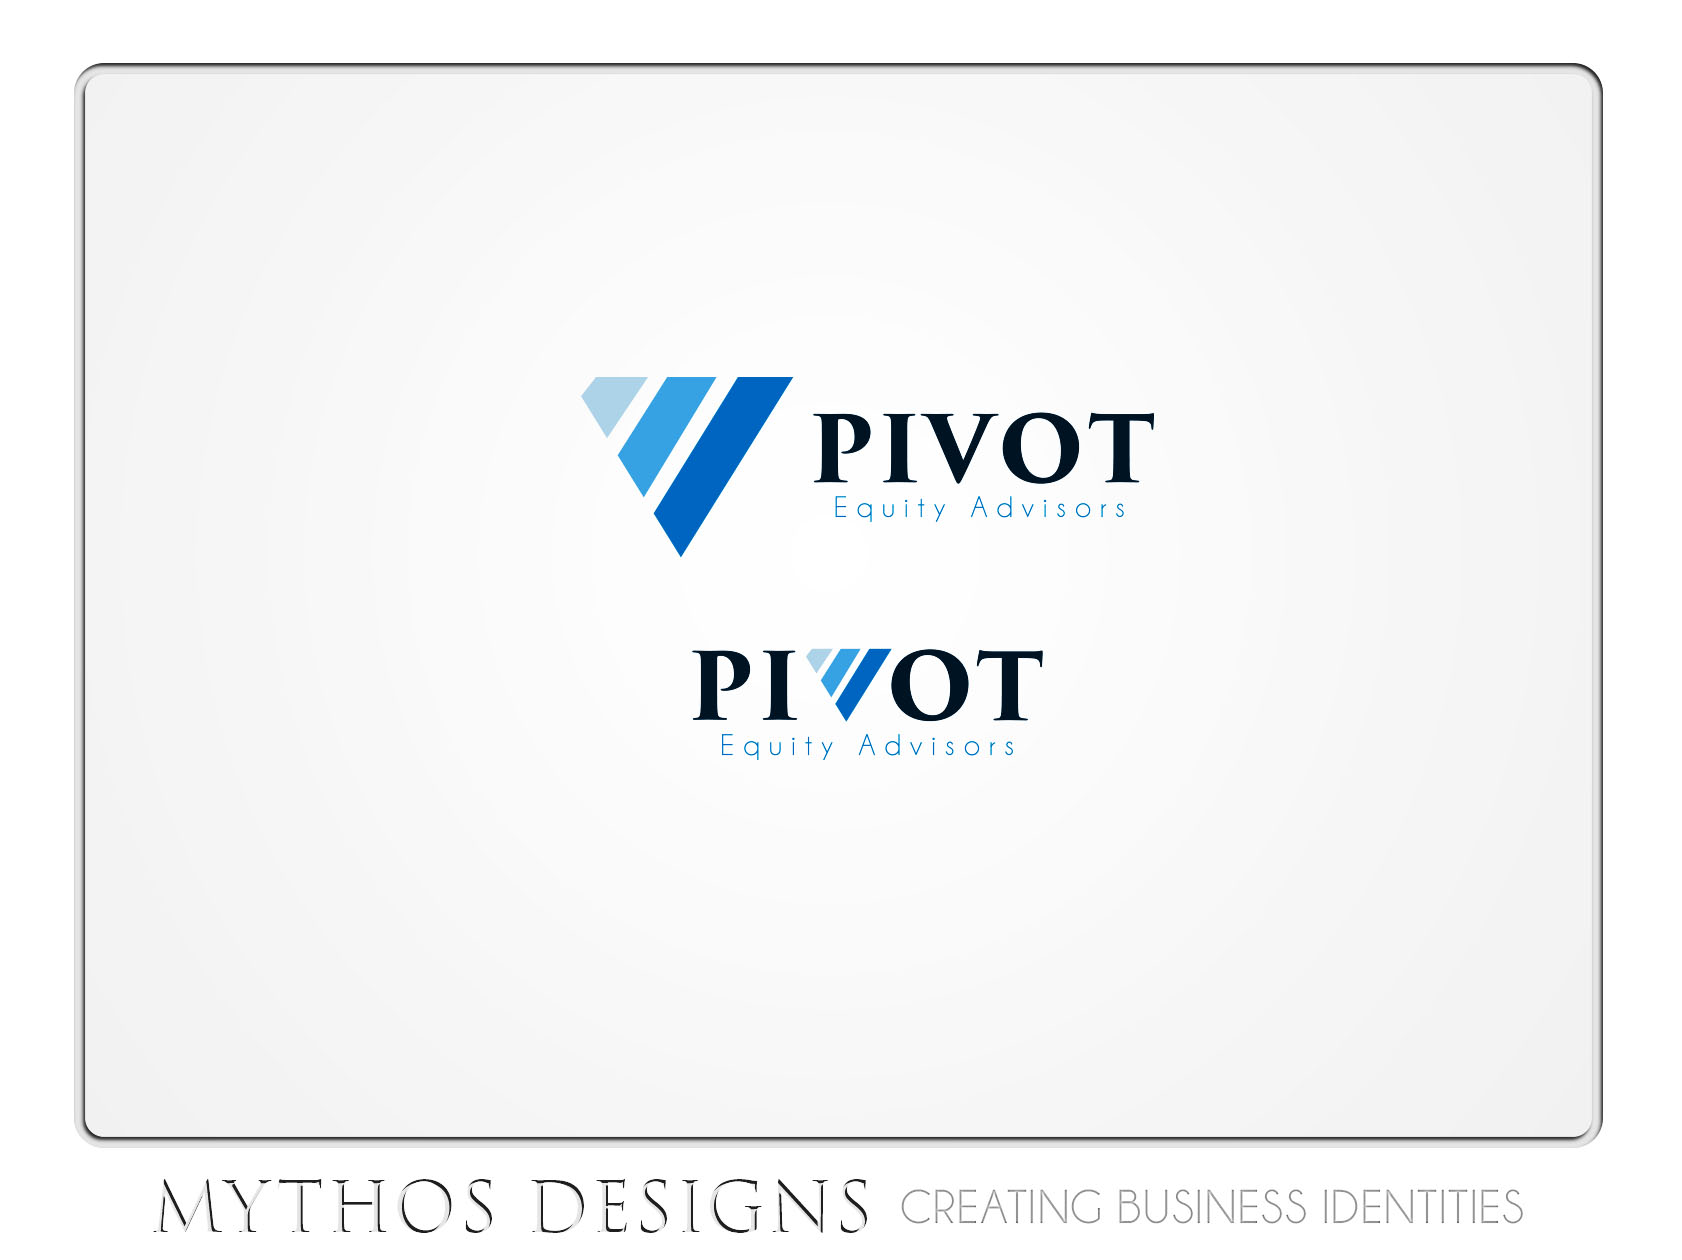 Logo Design by Mythos Designs - Entry No. 36 in the Logo Design Contest Unique Logo Design Wanted for Pivot Equity Advisors.